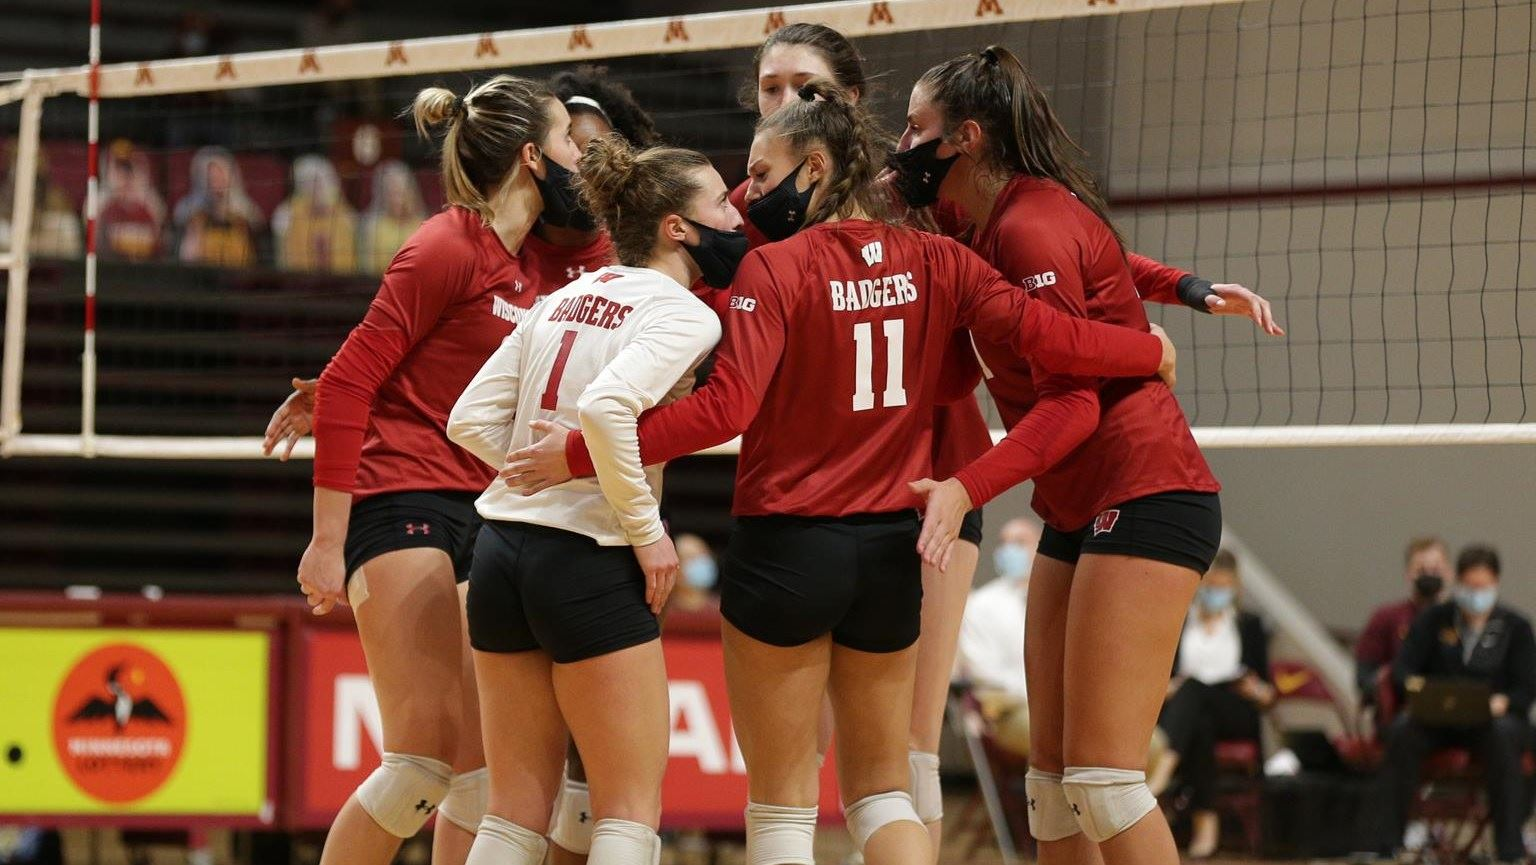 #1 Wisconsin Women's Volleyball team loses to #4 Texas in Final Four